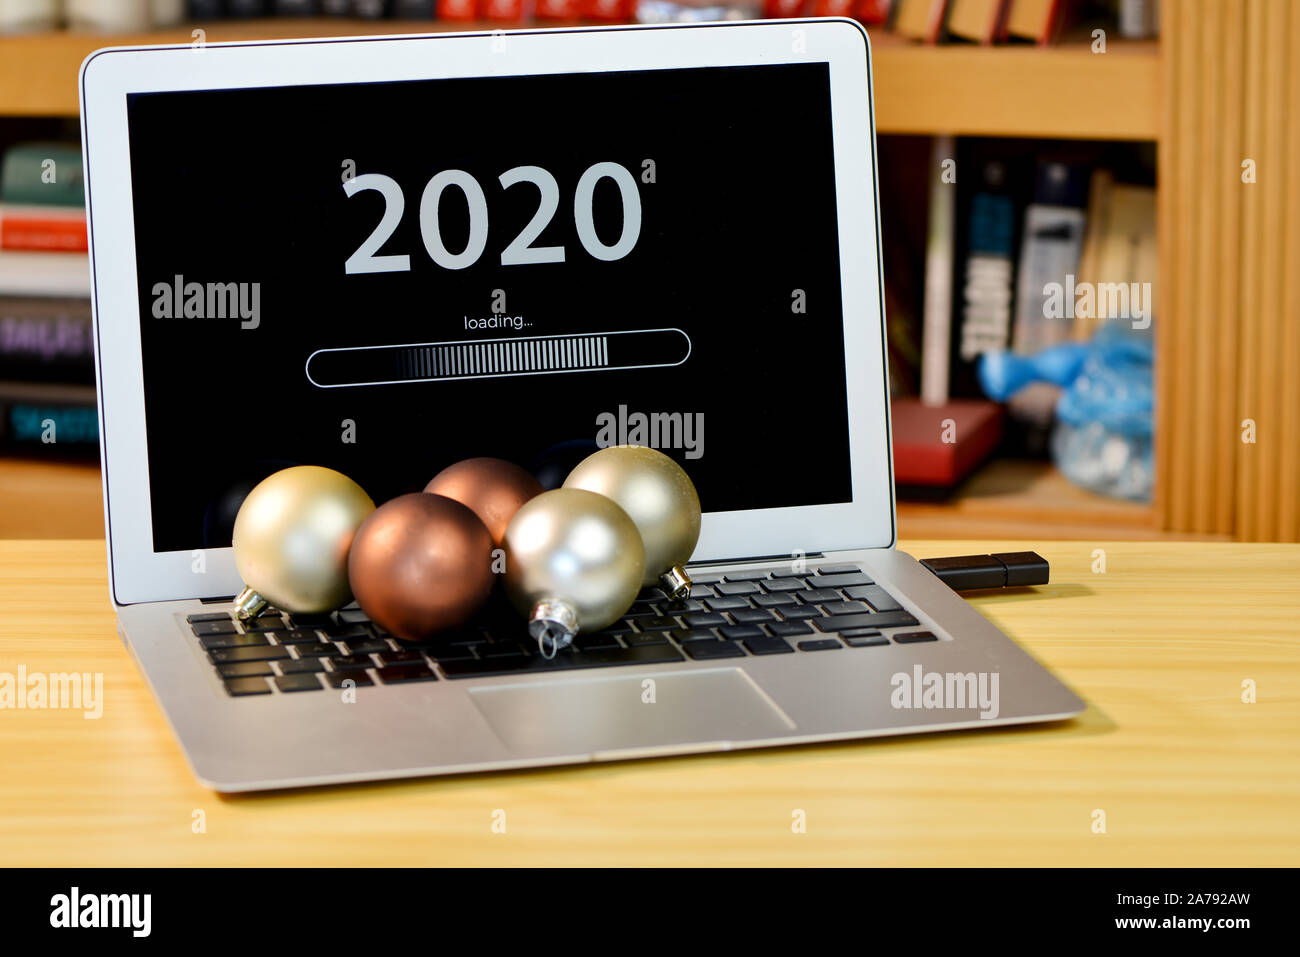 Christmas 2020 Laptops on the table laptop with text   2020 loading   on screen and with